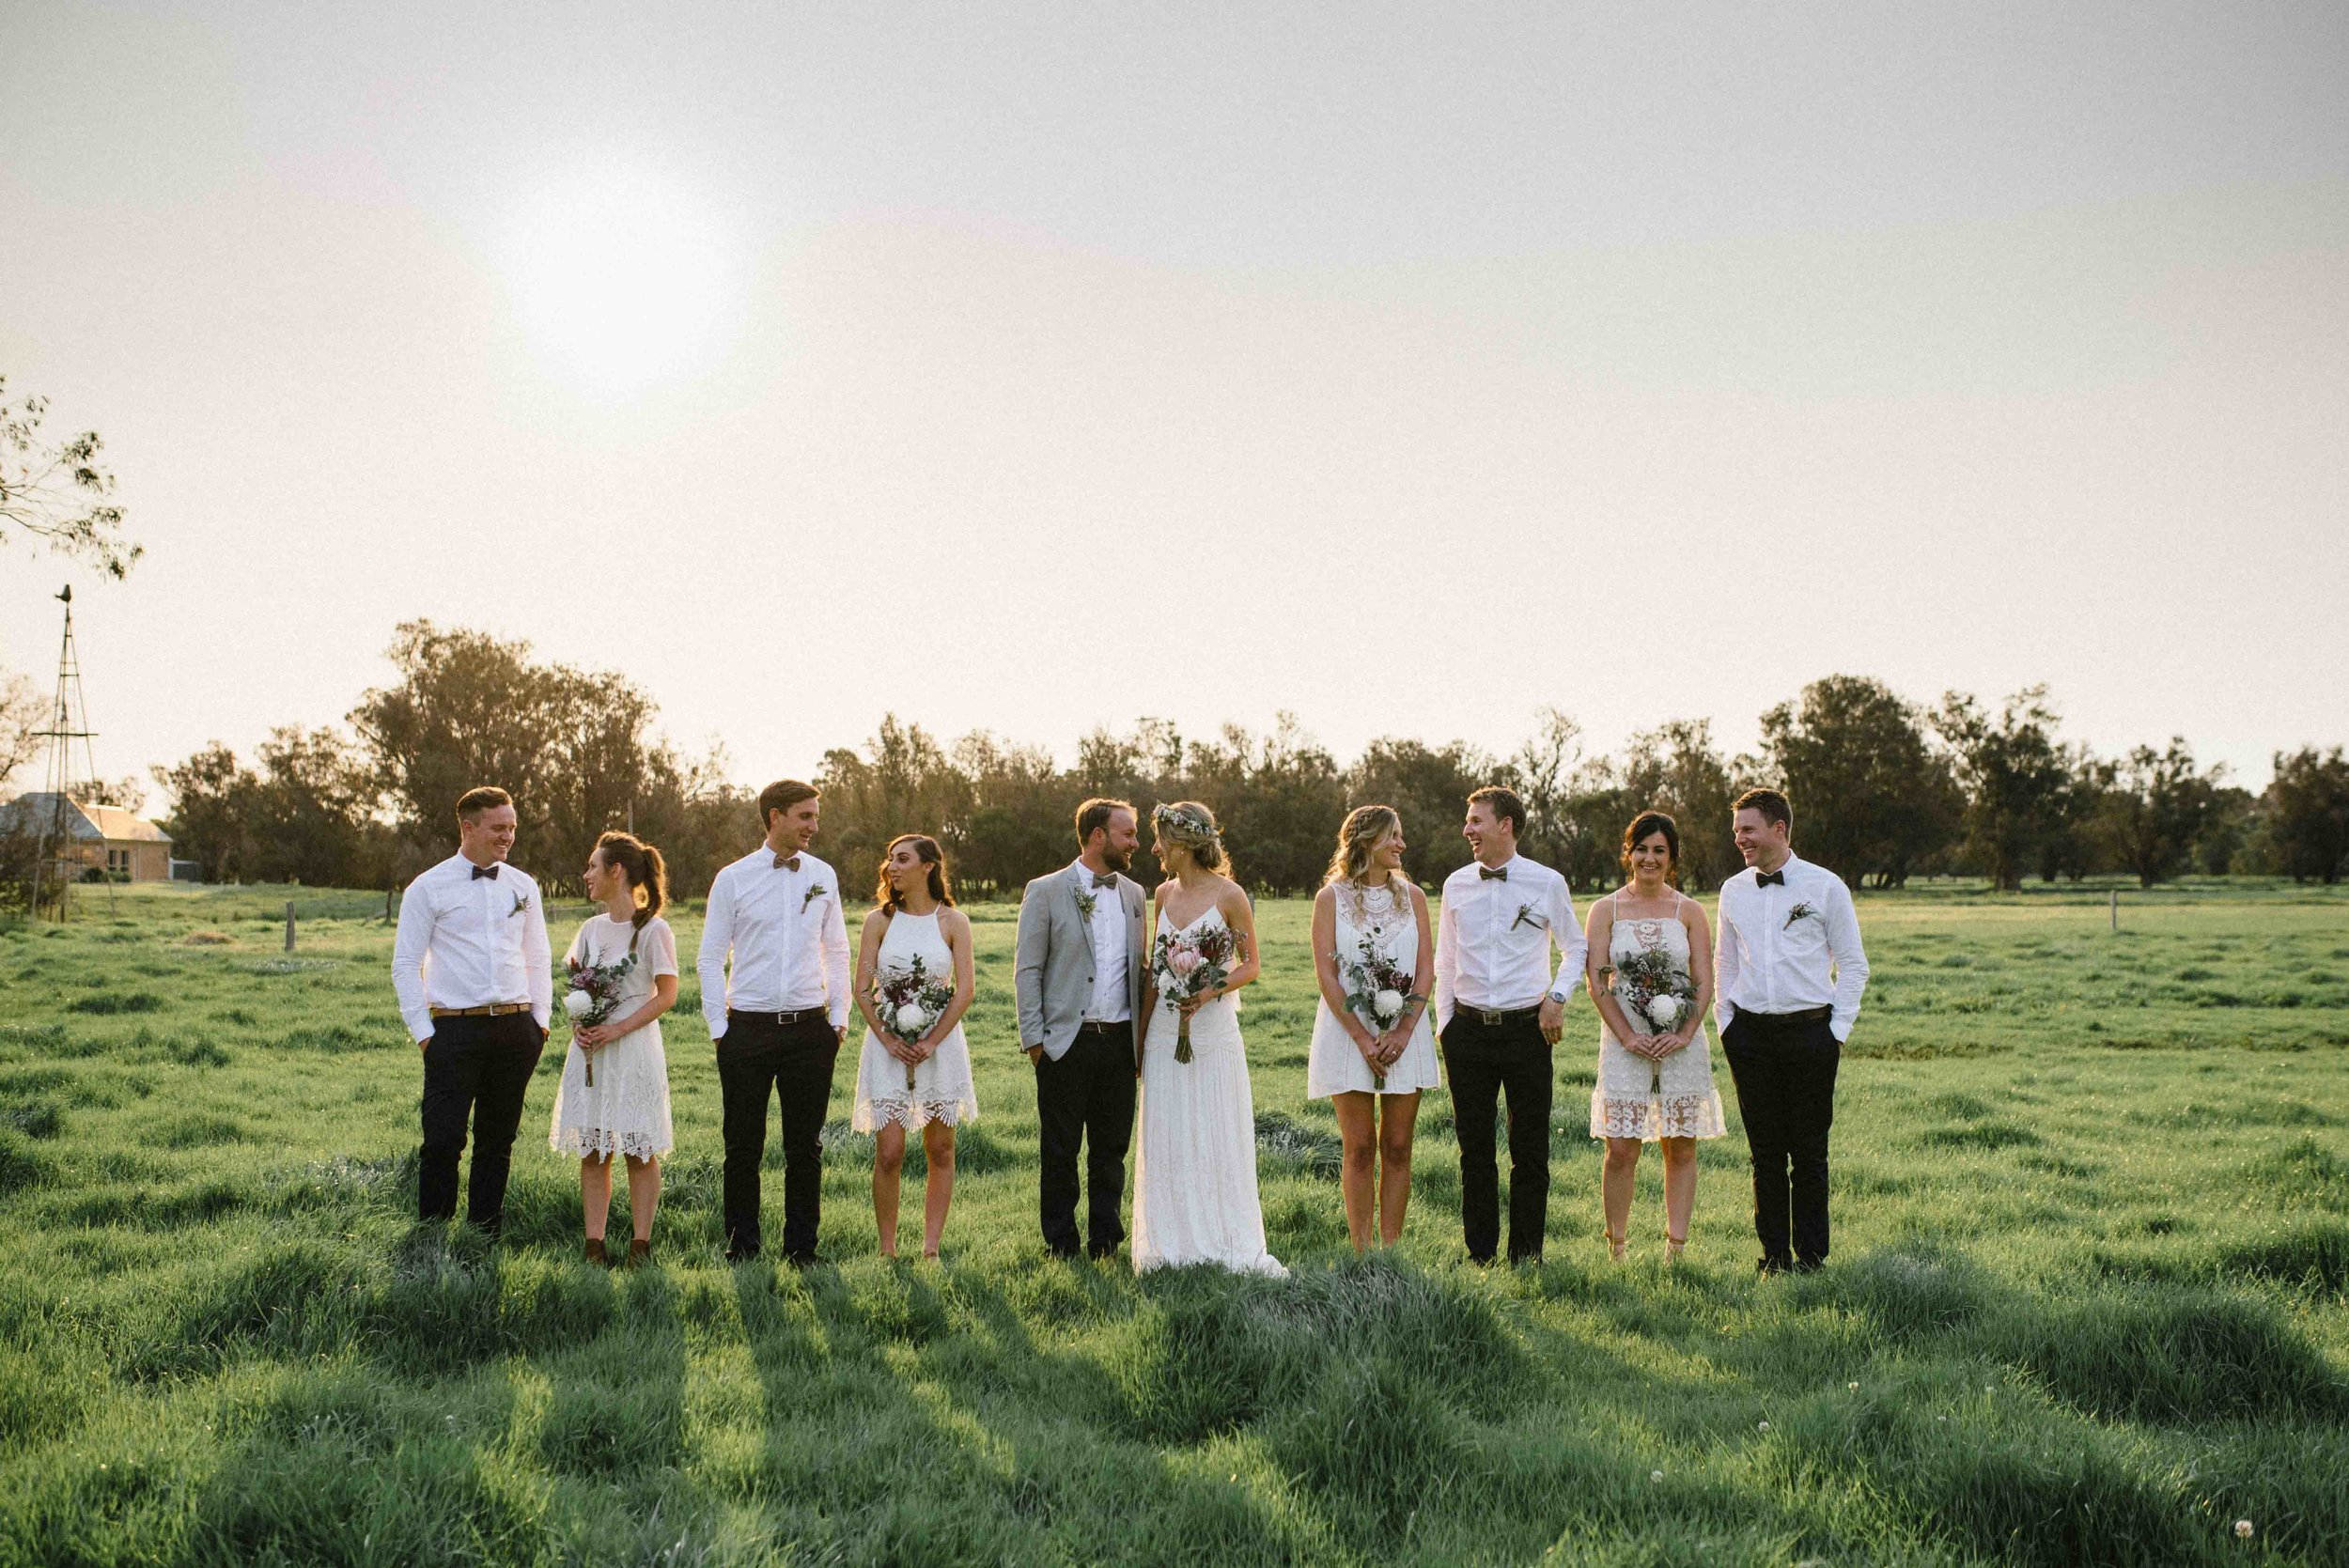 47-casual bridal party wedding photography perth.jpg